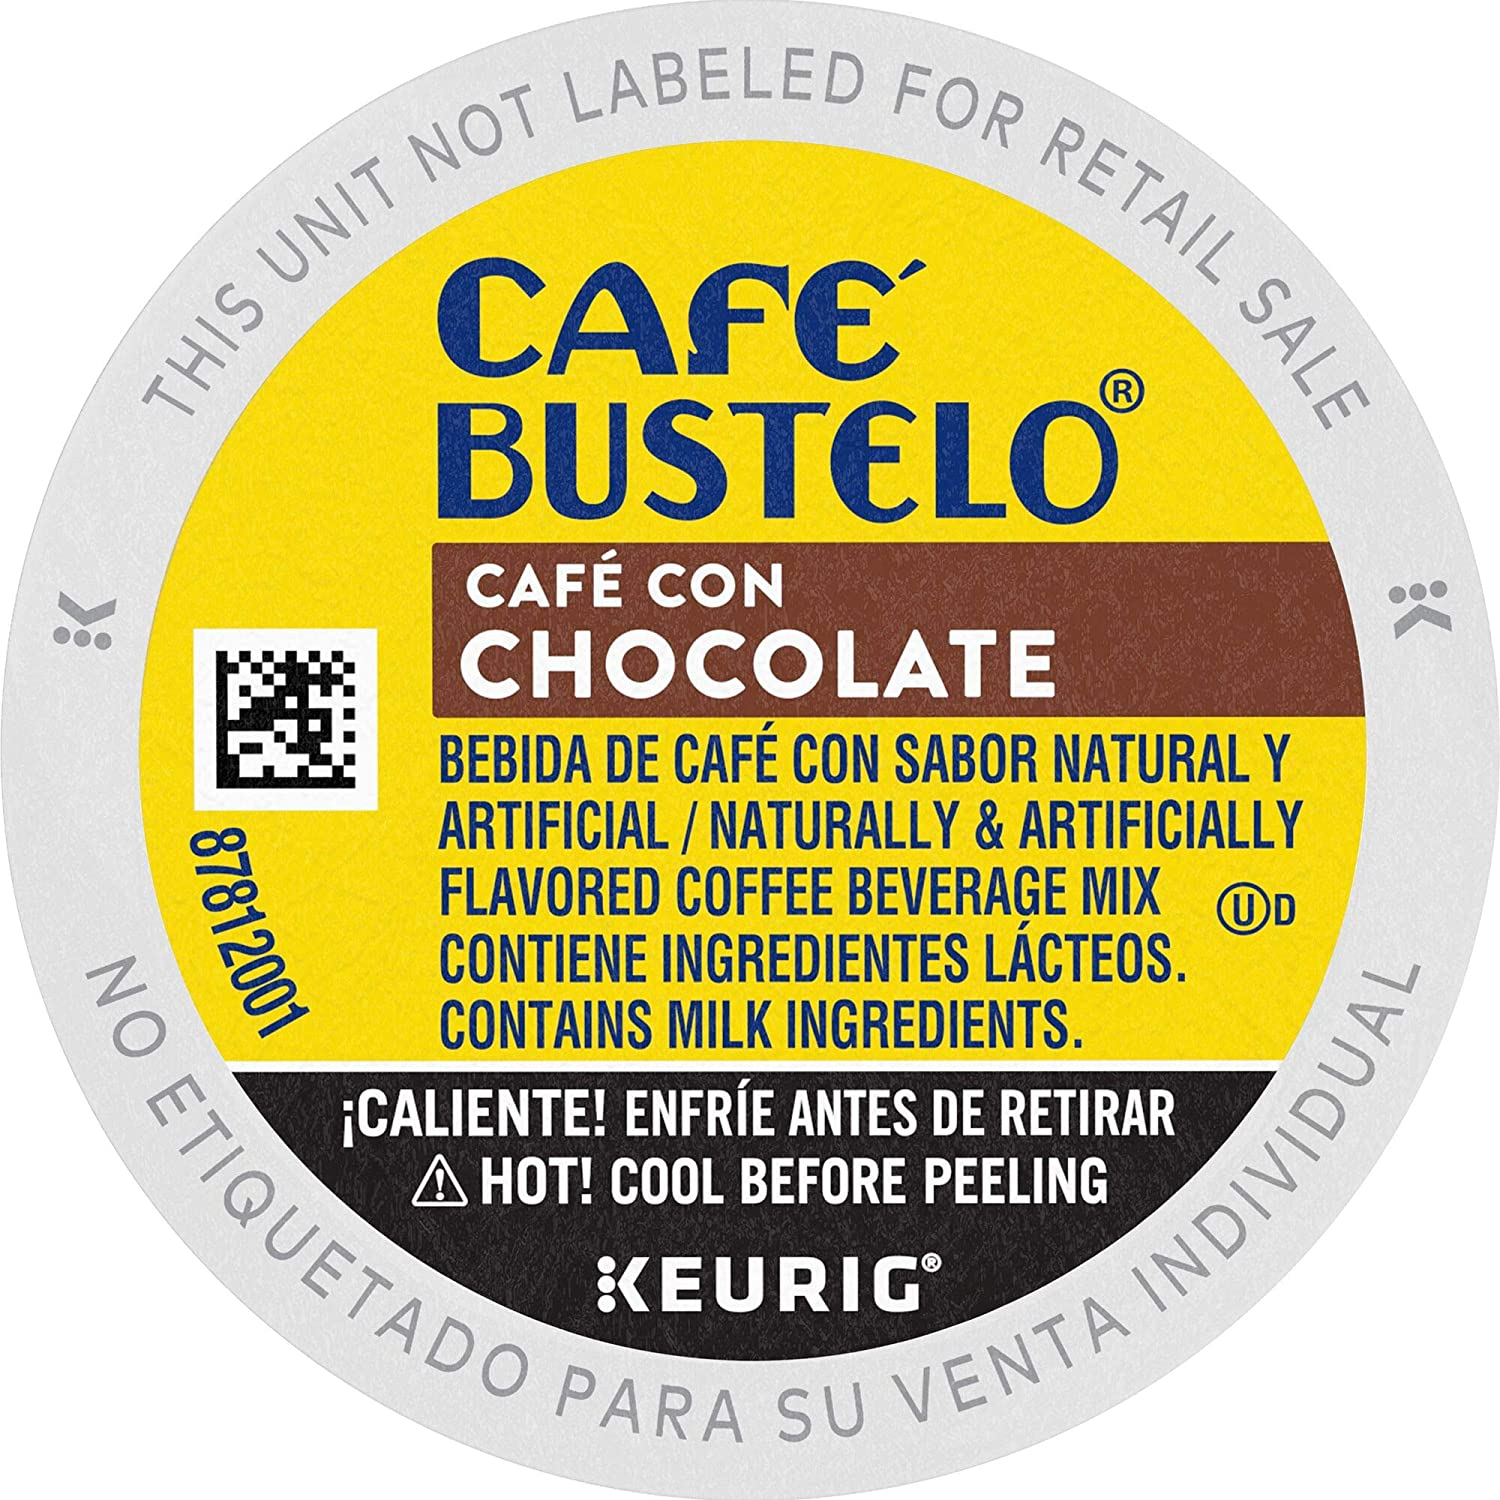 Cafe Bustelo Coffee Cafe Con Chocolate Flavored Espresso Style Coffee, 60 K Cups for Keurig Coffee Makers